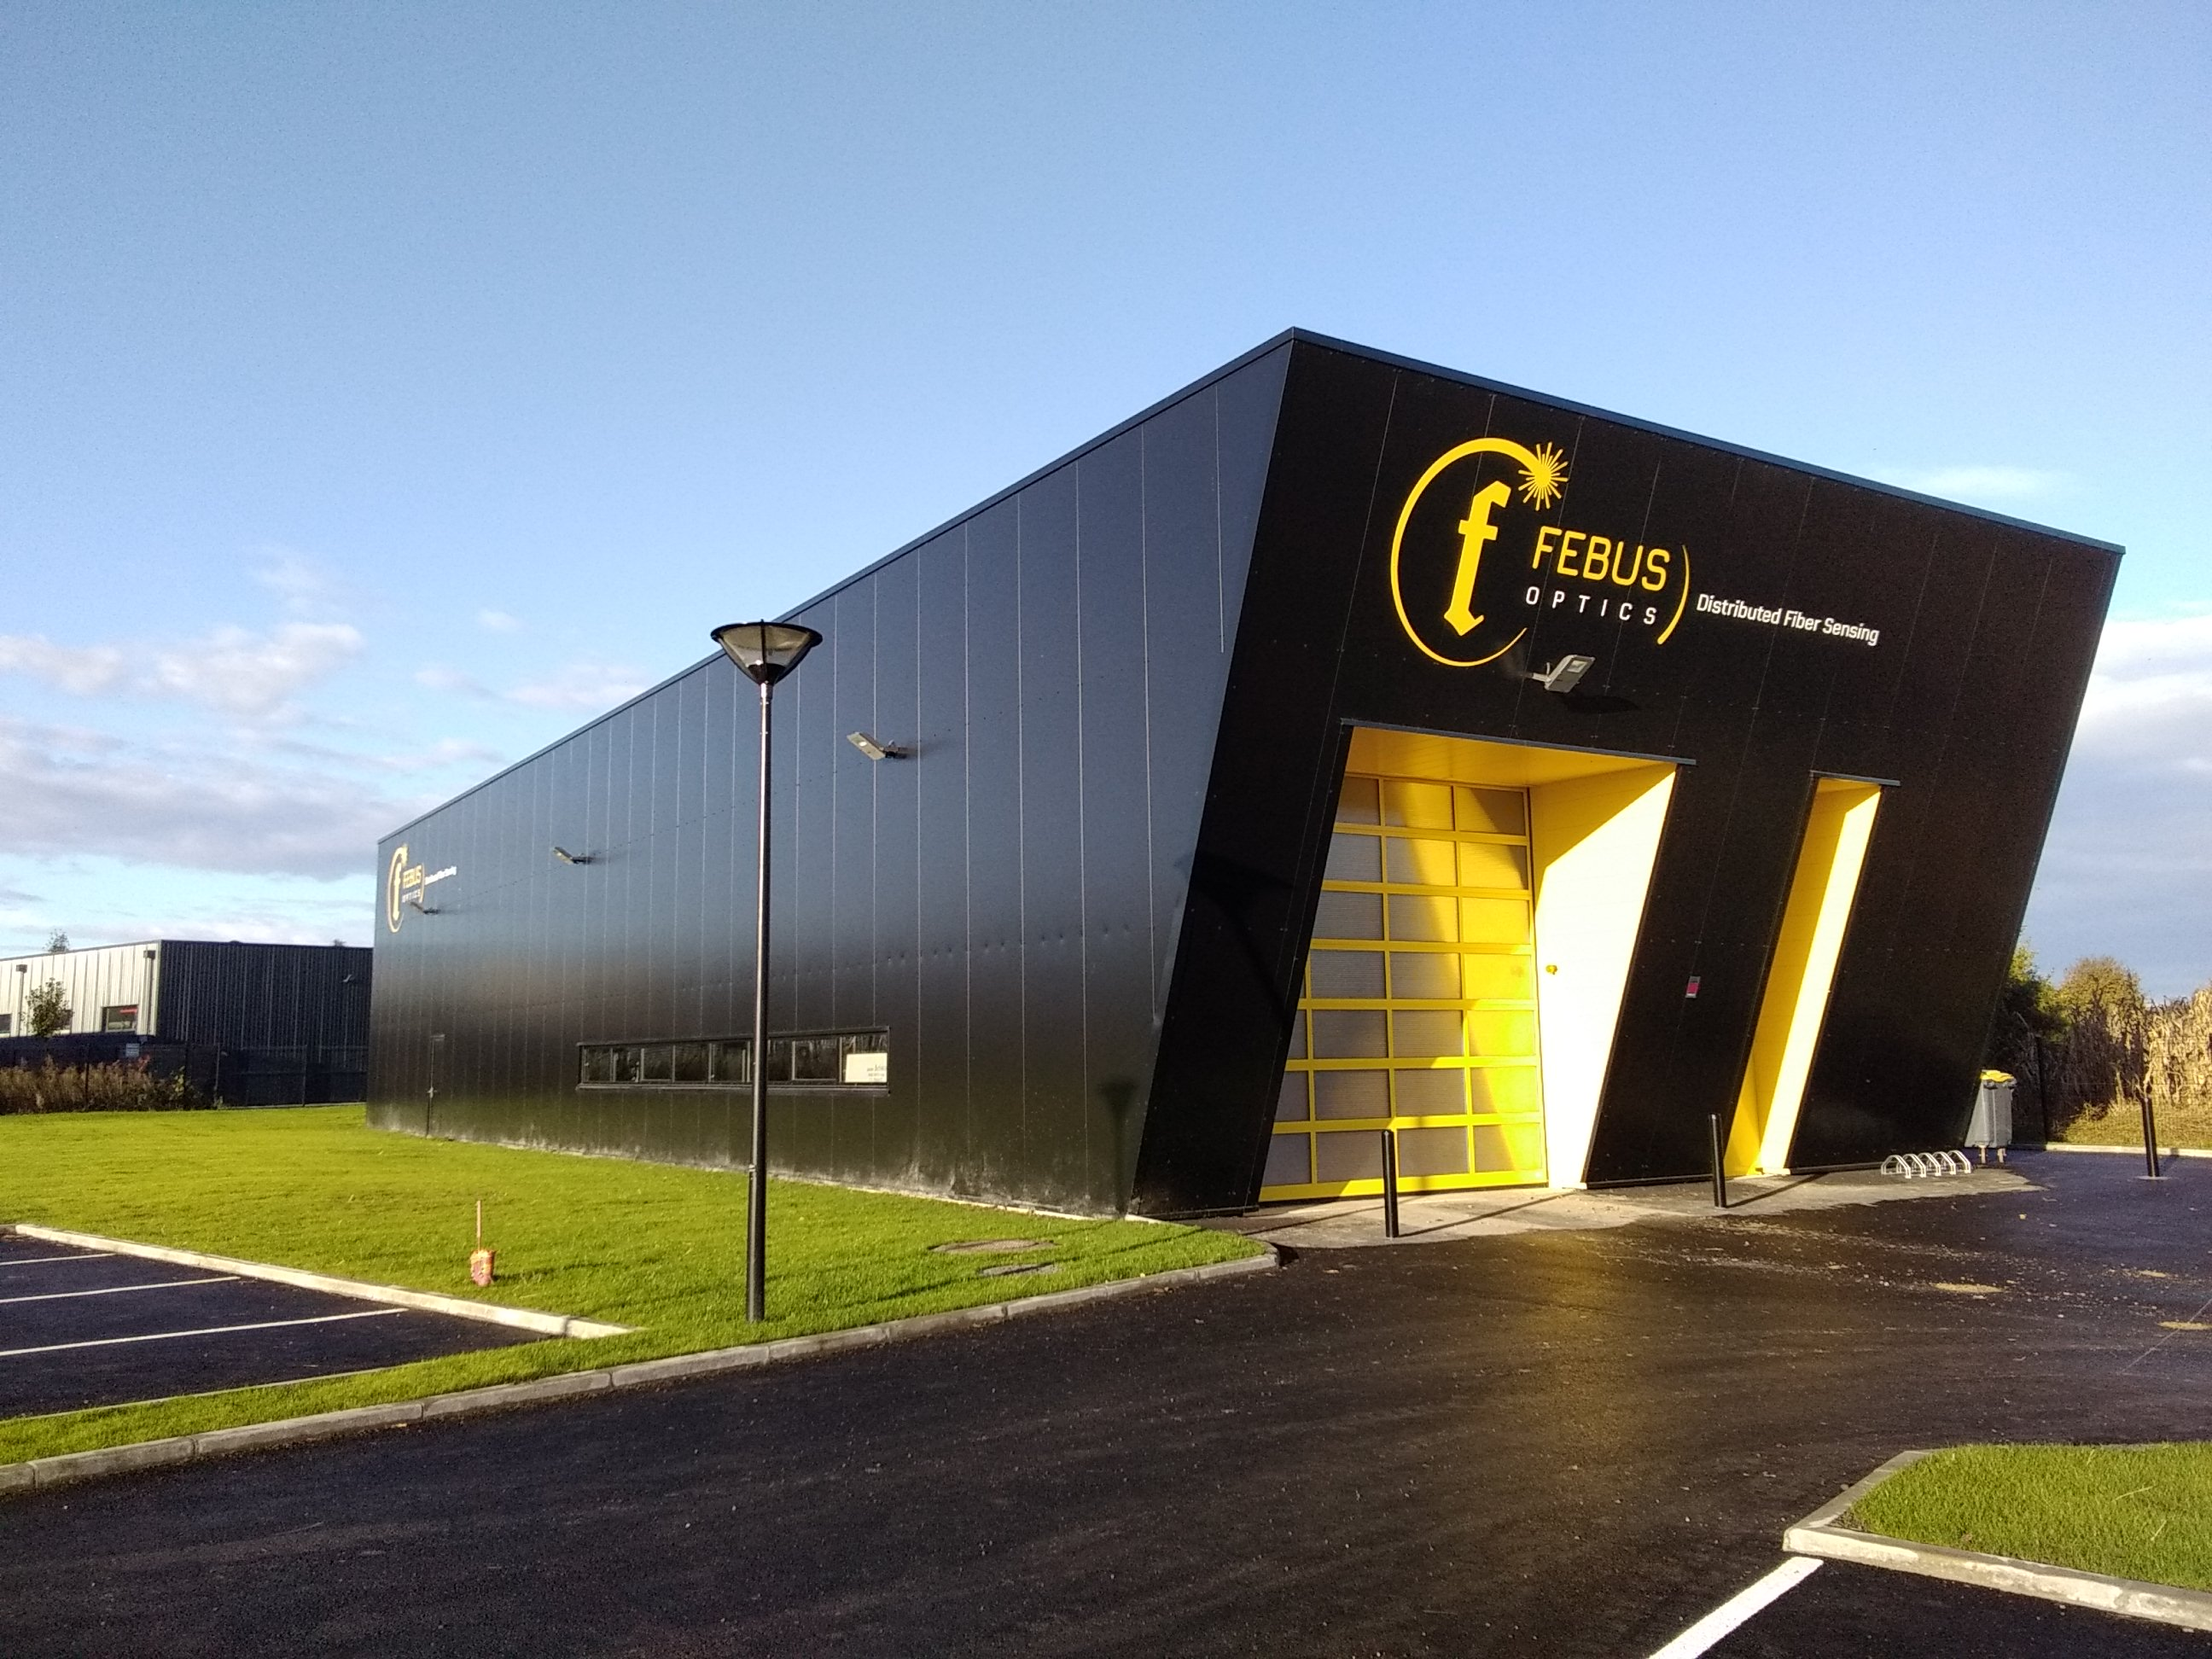 FEBUS OPTICS technical team is based in Pau and Strasbourg (France)